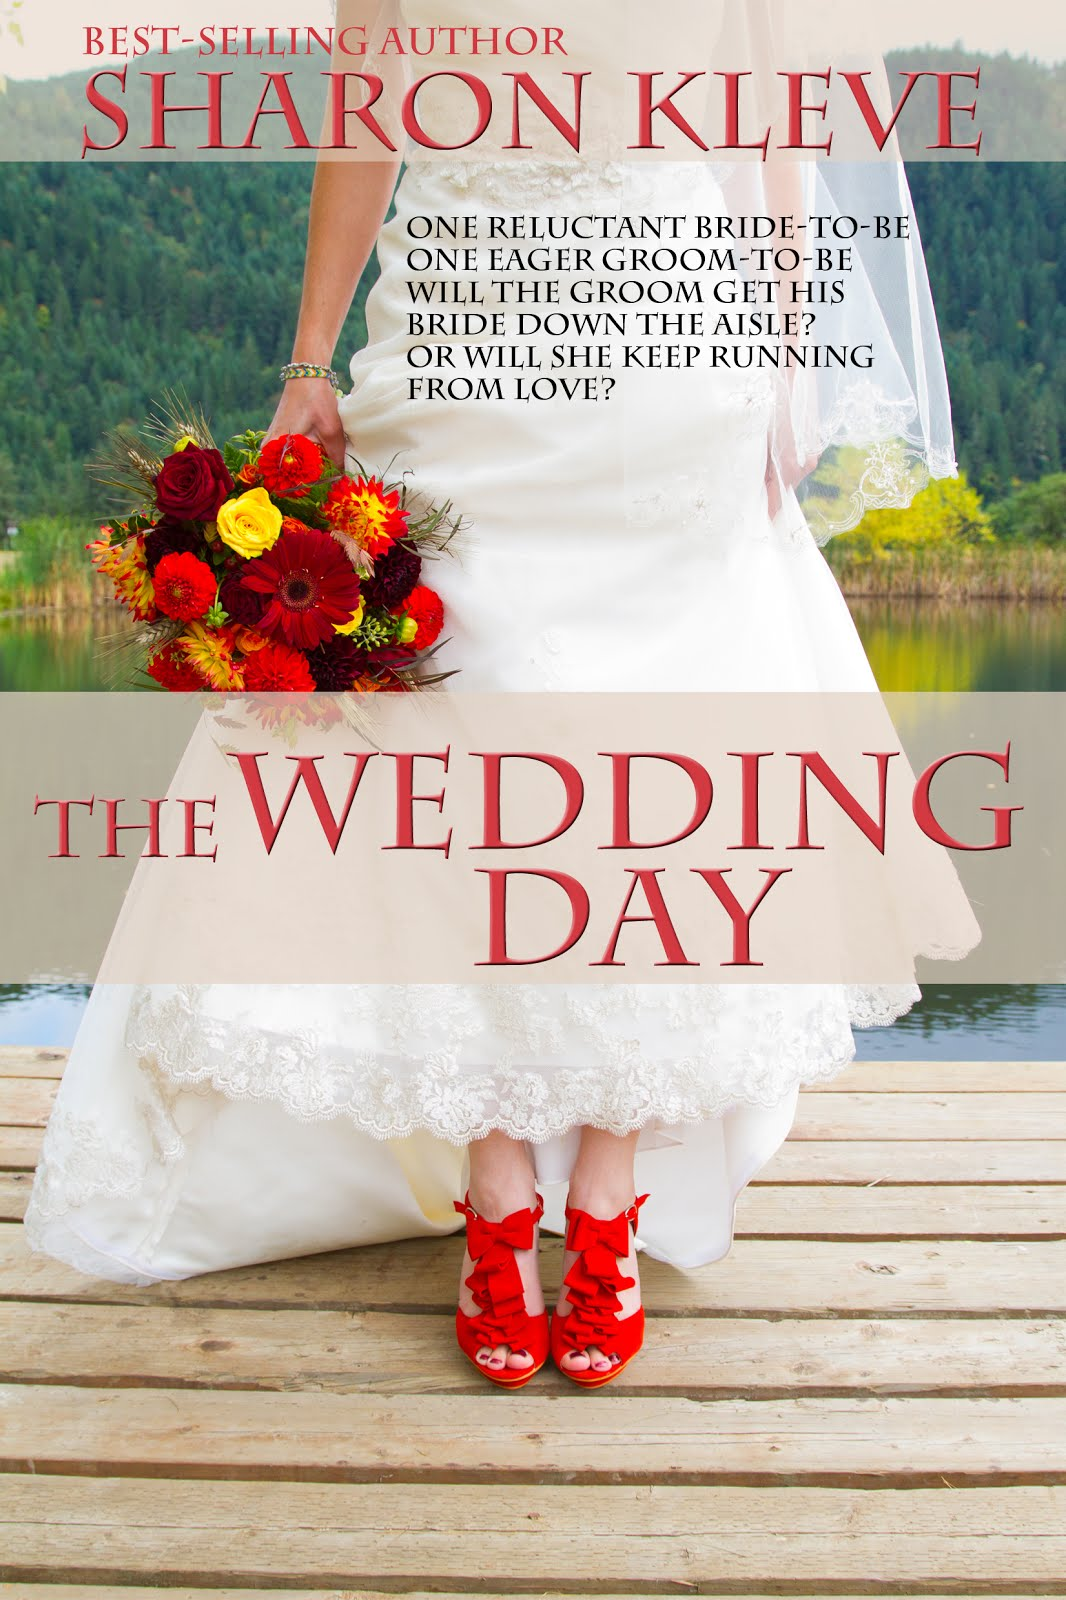 The Wedding Day - Four Weddings And A Fiasco